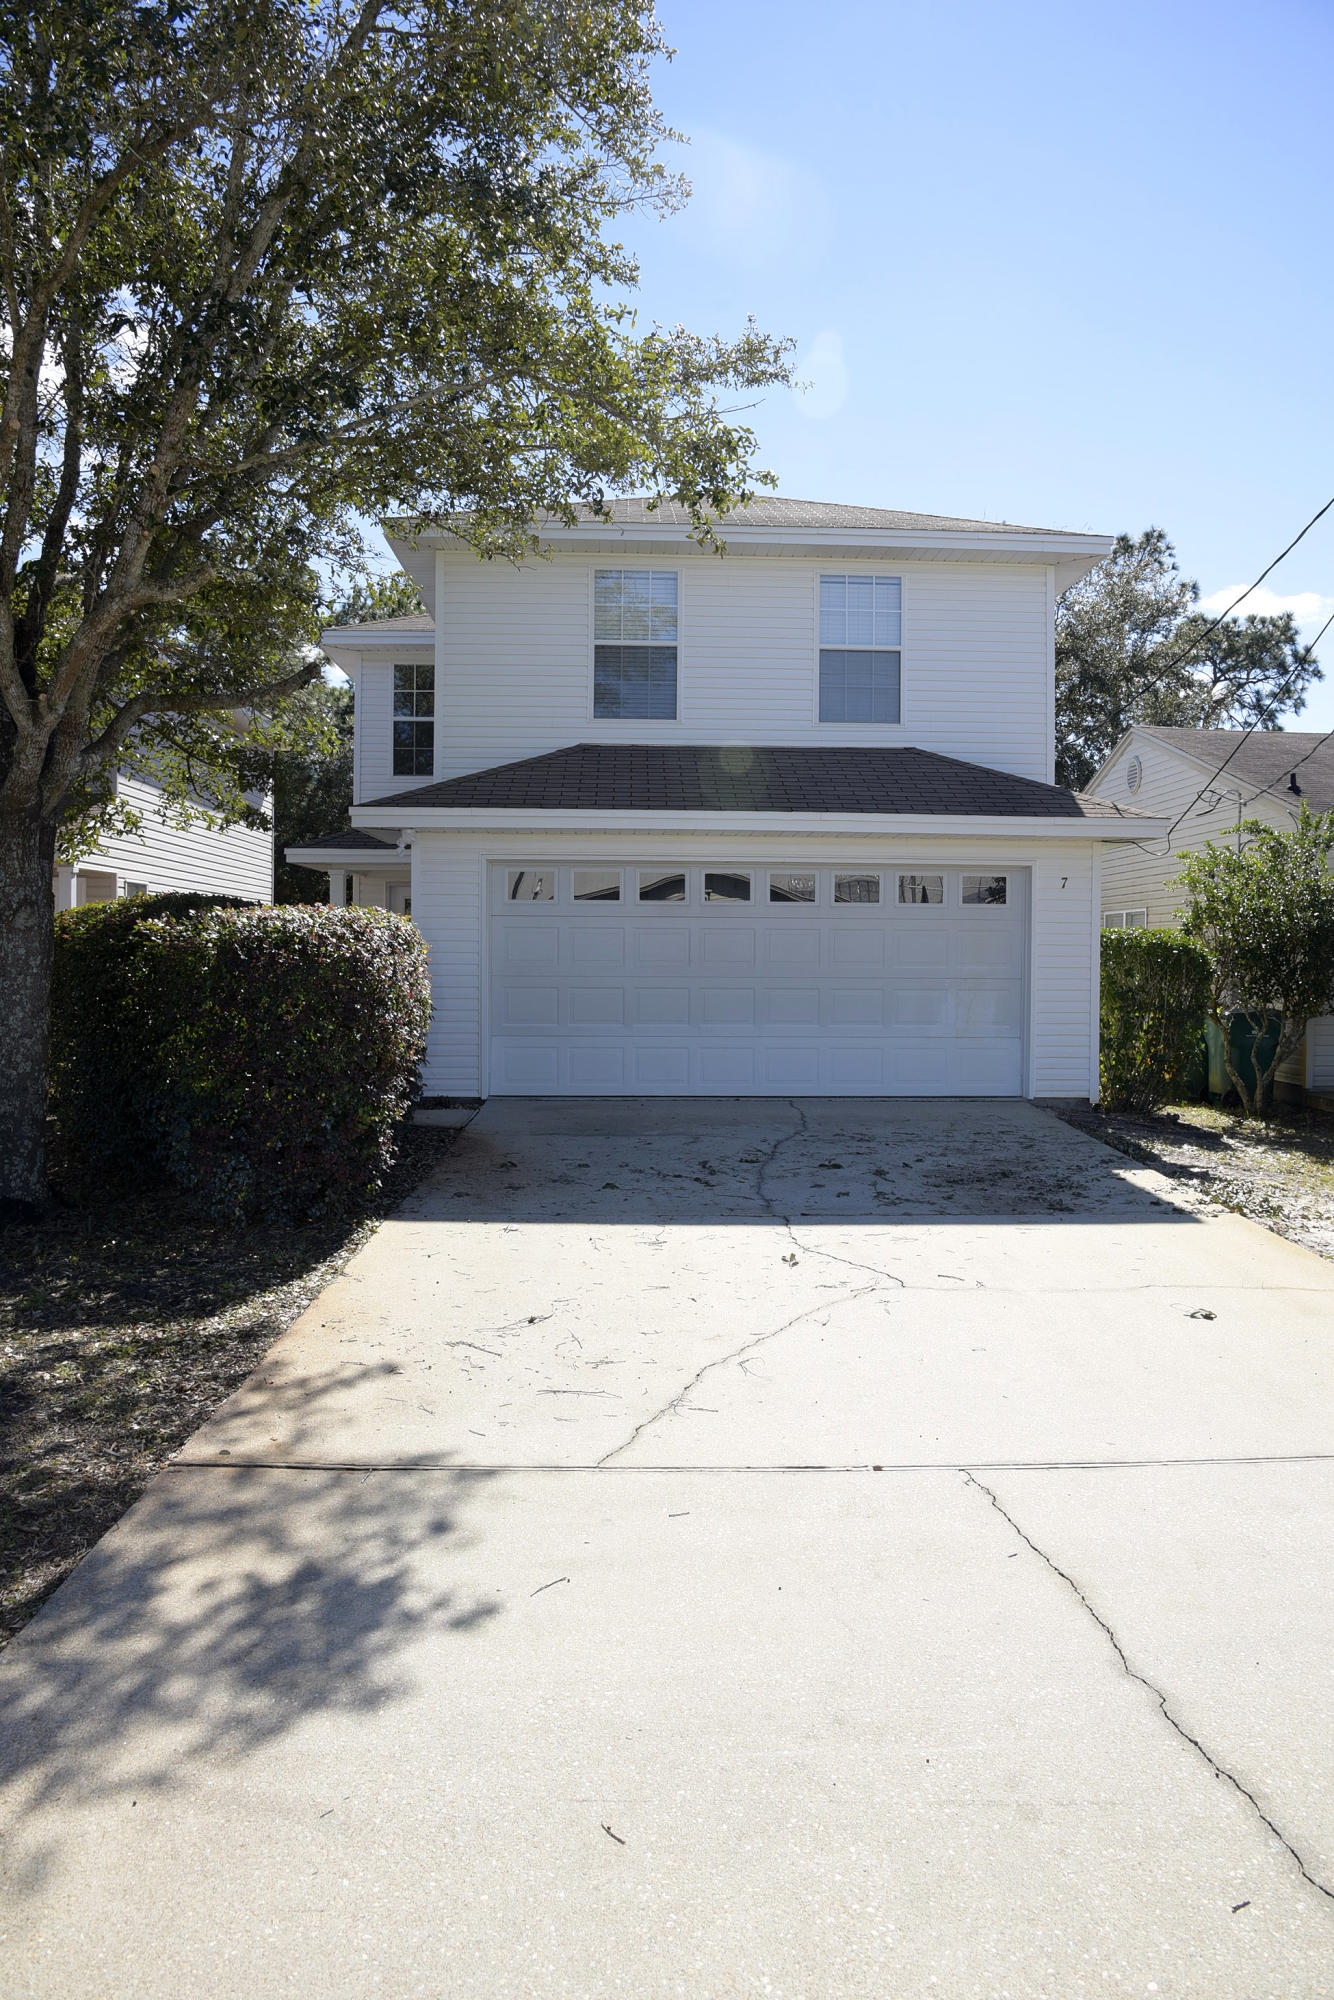 Photo of home for sale at 7 6th, Shalimar FL